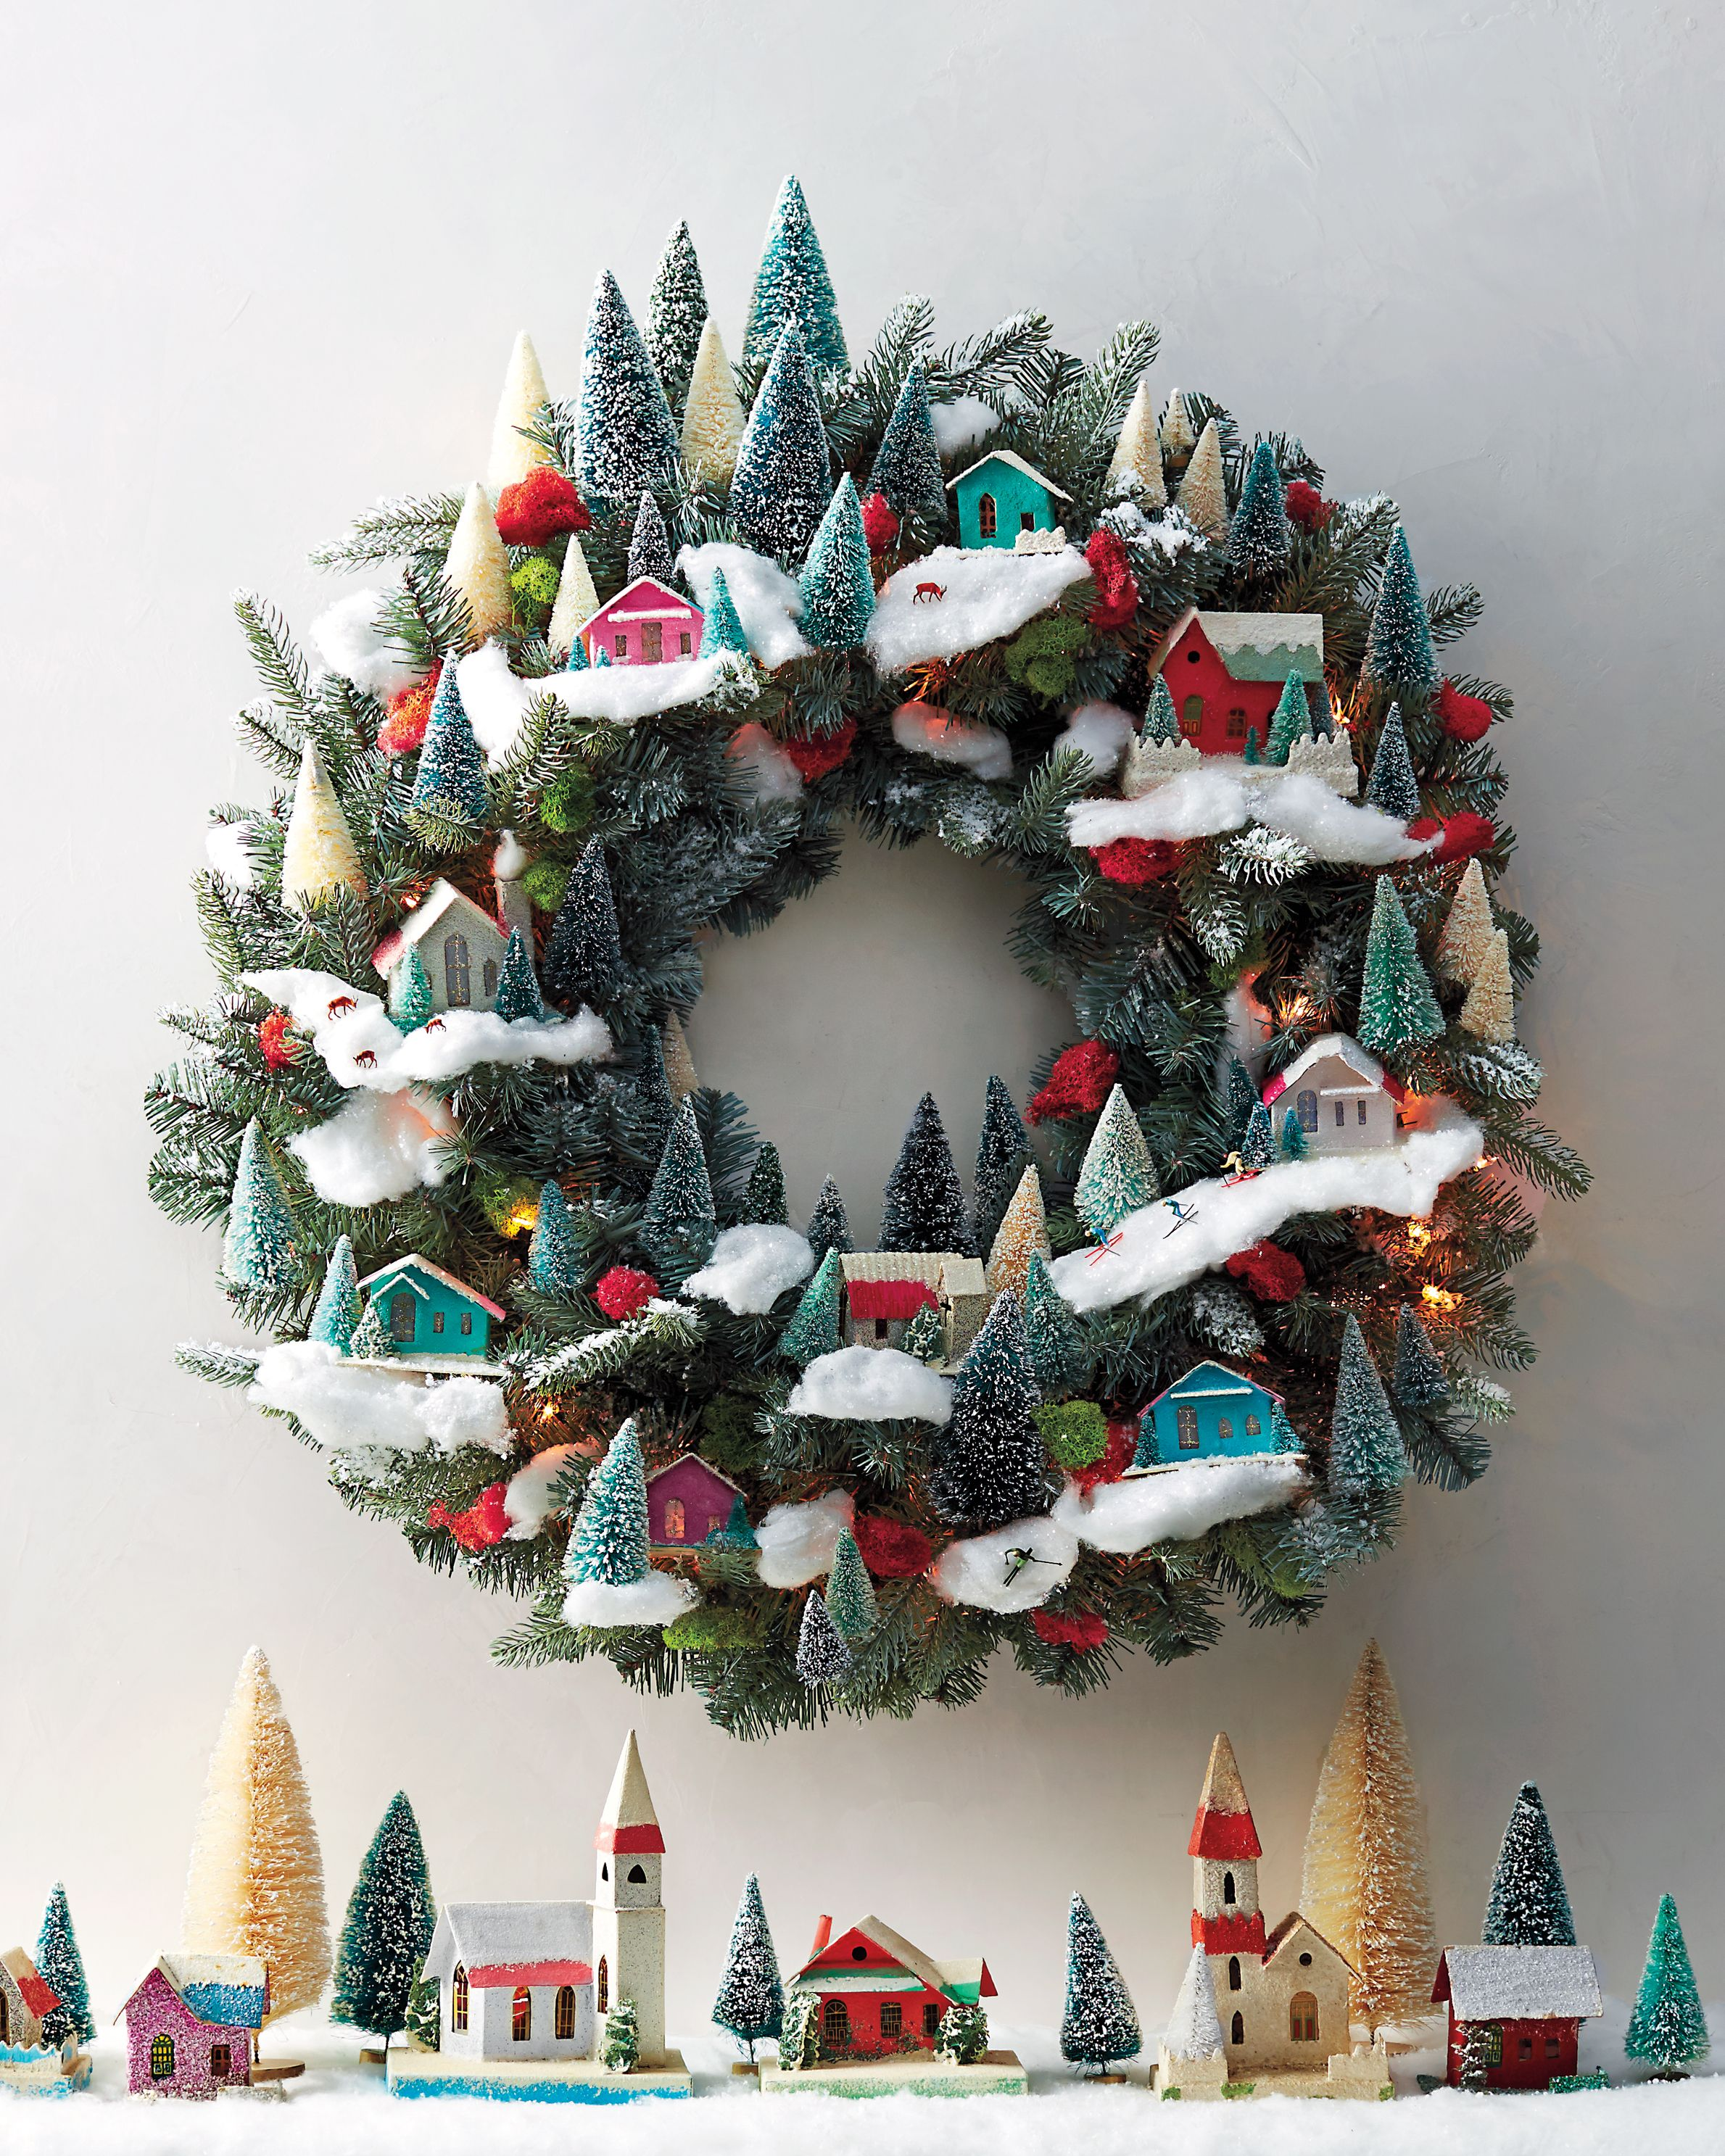 How To Make A Magical Christmas Wreath Of Village Miniatures